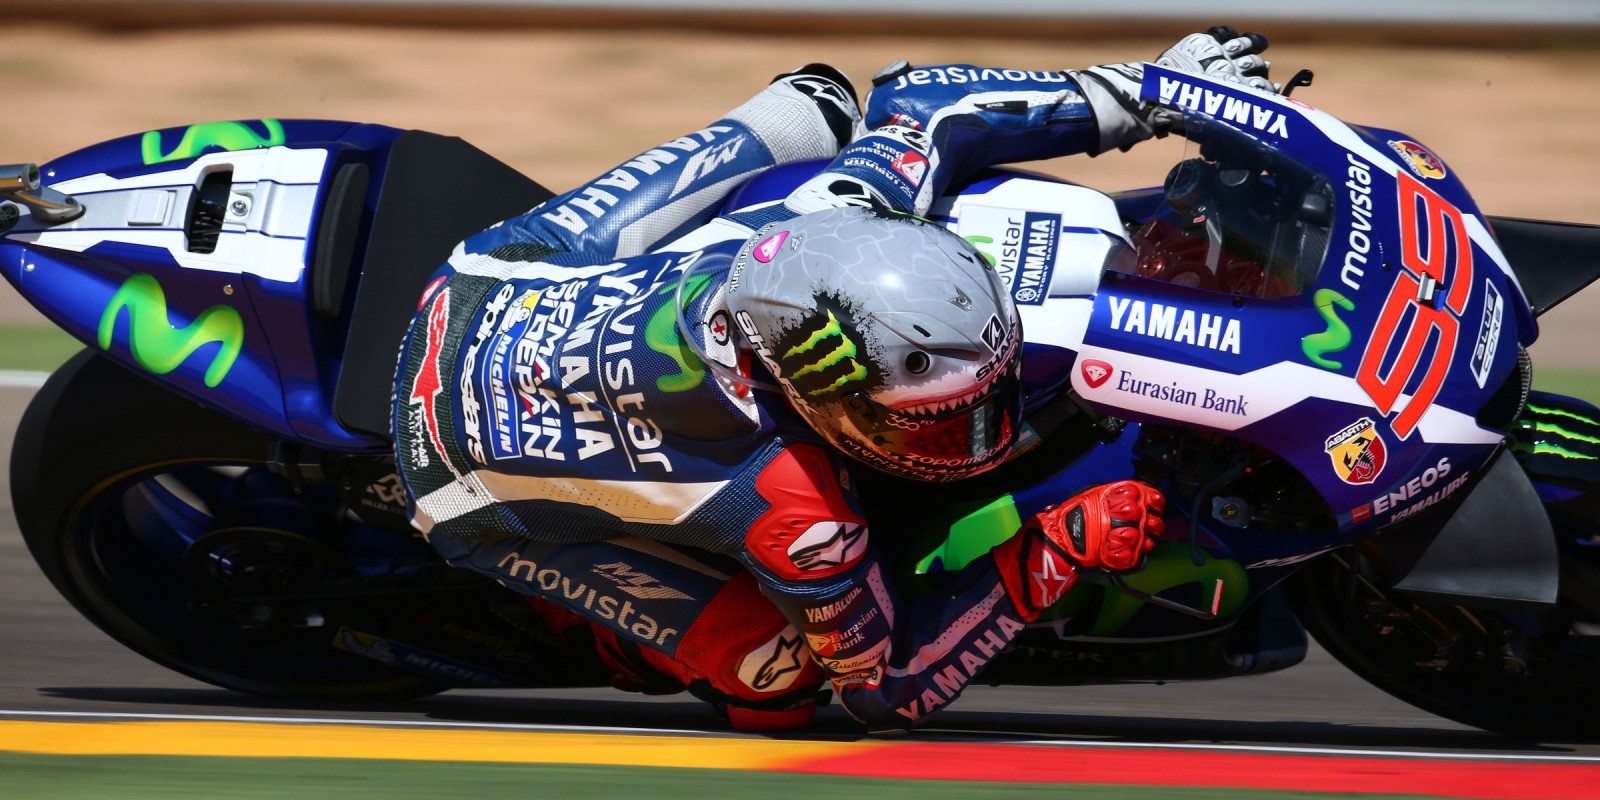 Jorge Lorenzo during the 2016 MotoGP season in Aragon, Spain